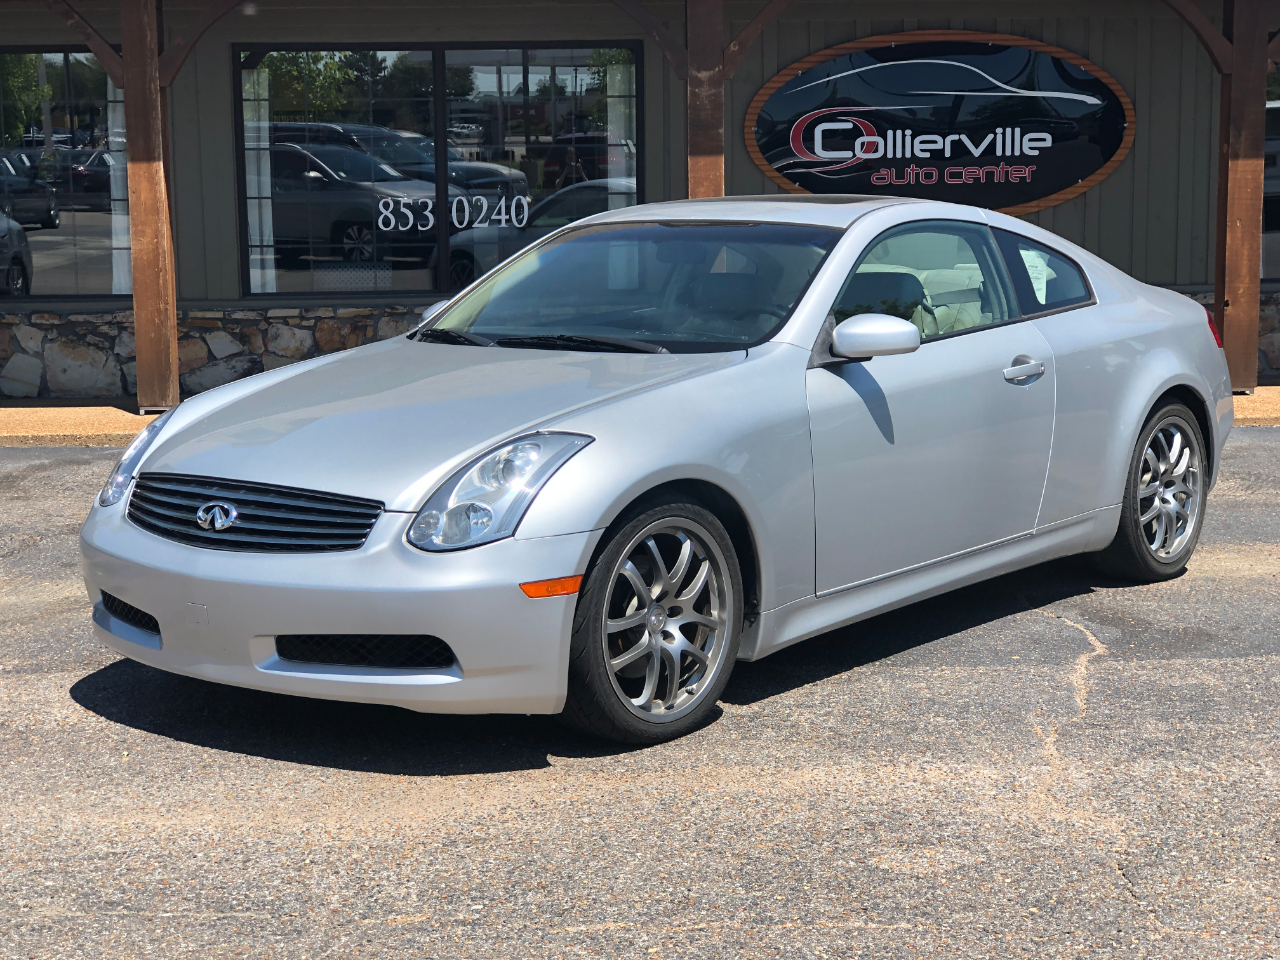 2006 Infiniti G35 Coupe 2dr Cpe Manual